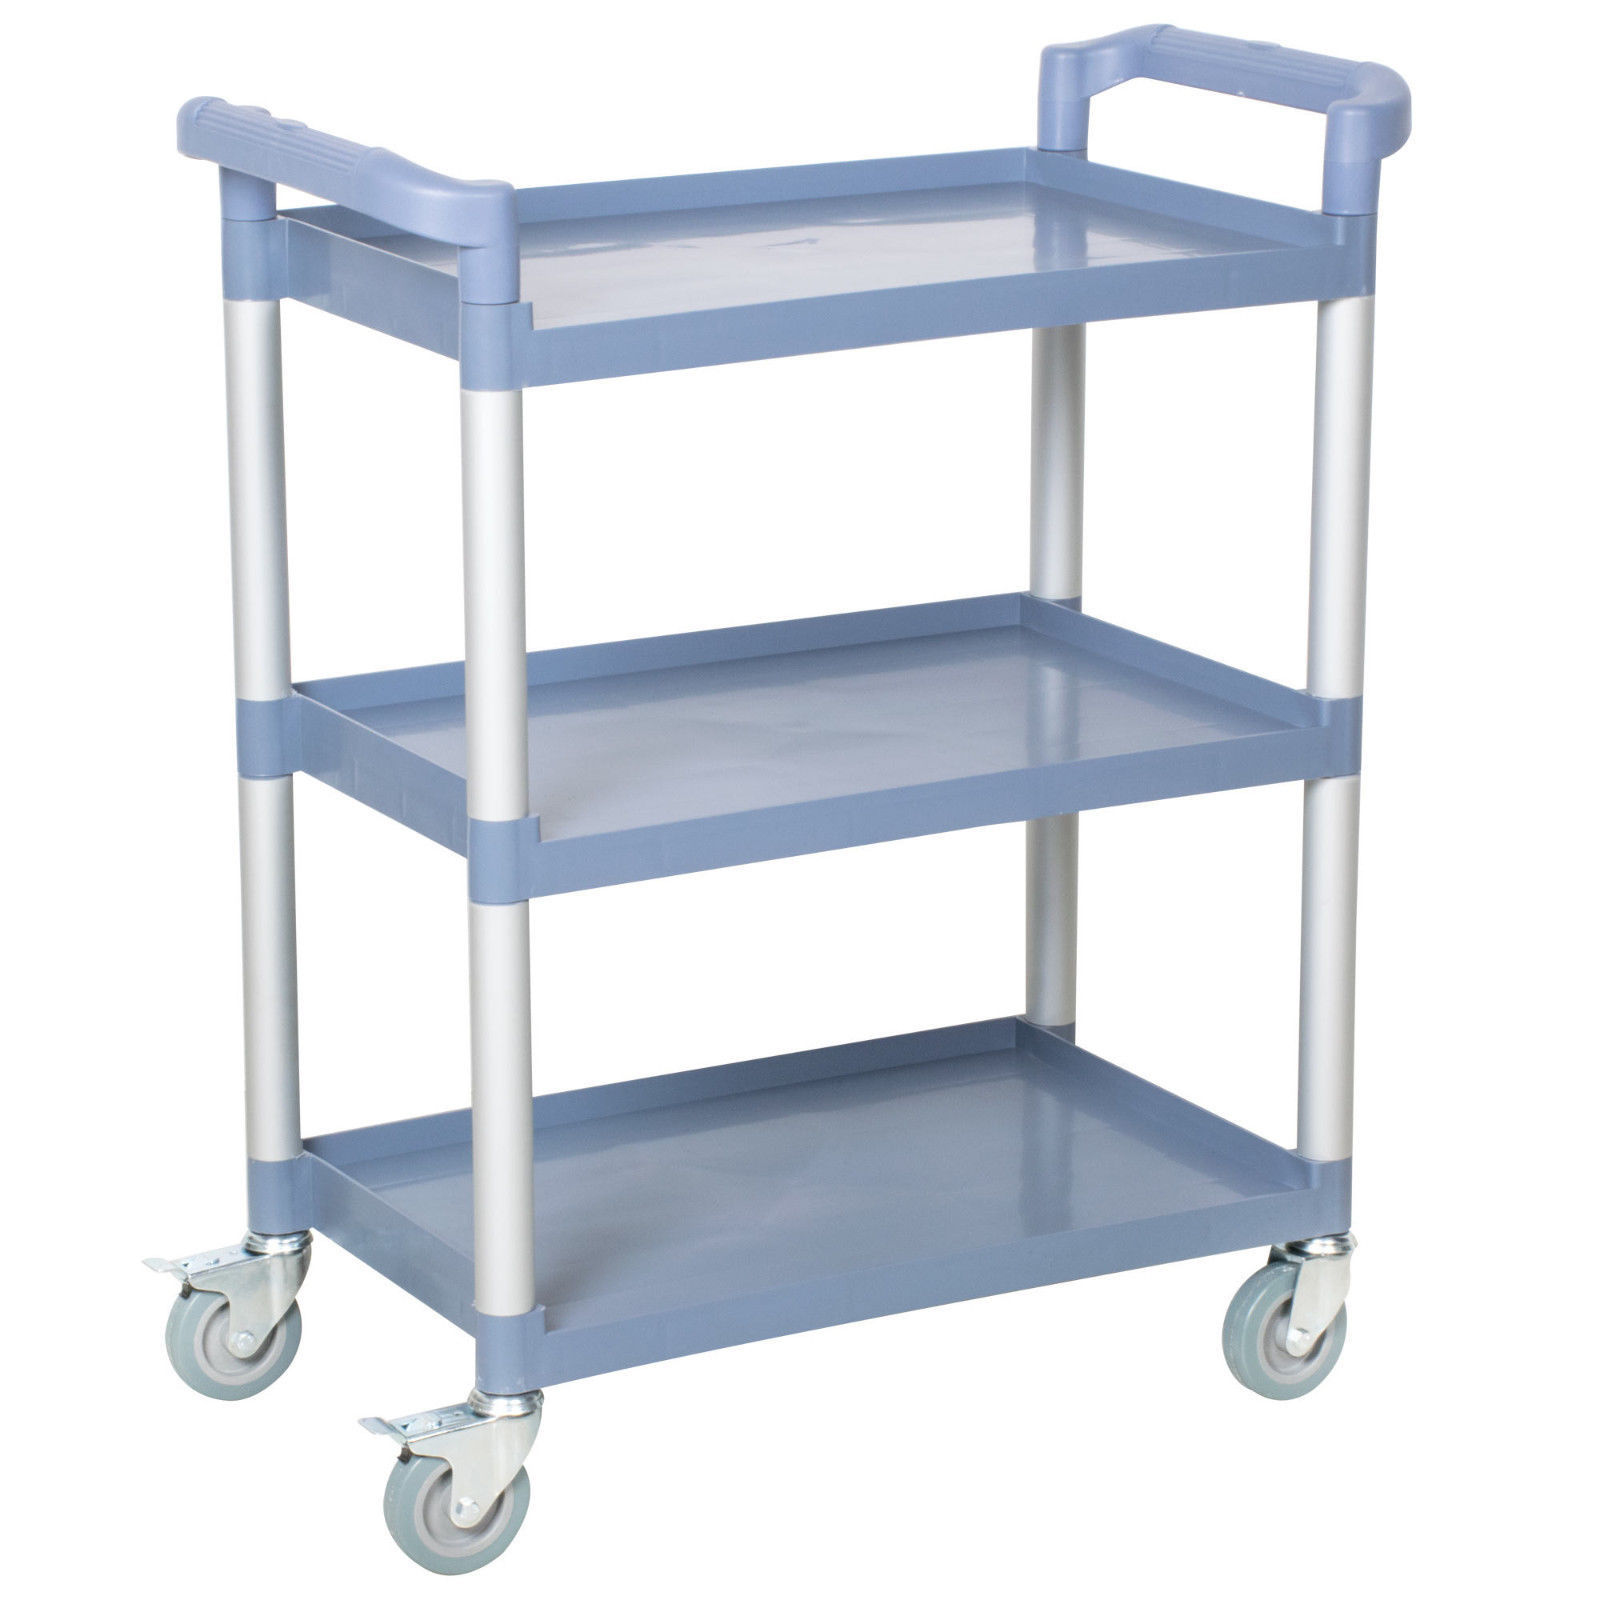 BlueThree Shelf Utility Cart / Bus Cart  BLACK AND BLUE AVAILABLE Best Price